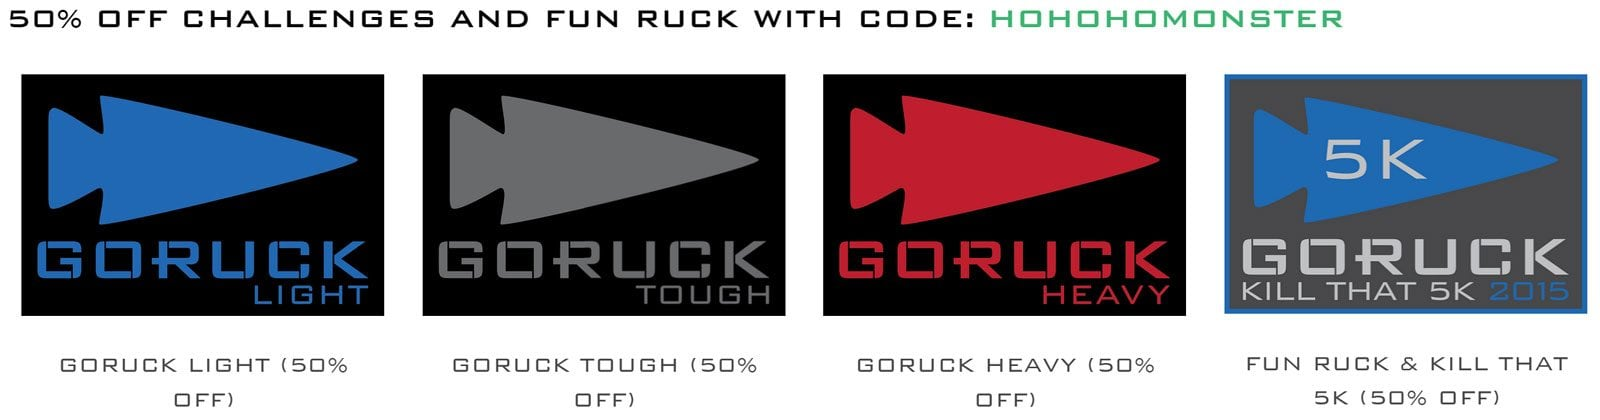 goruck-xmas-july-2015-events